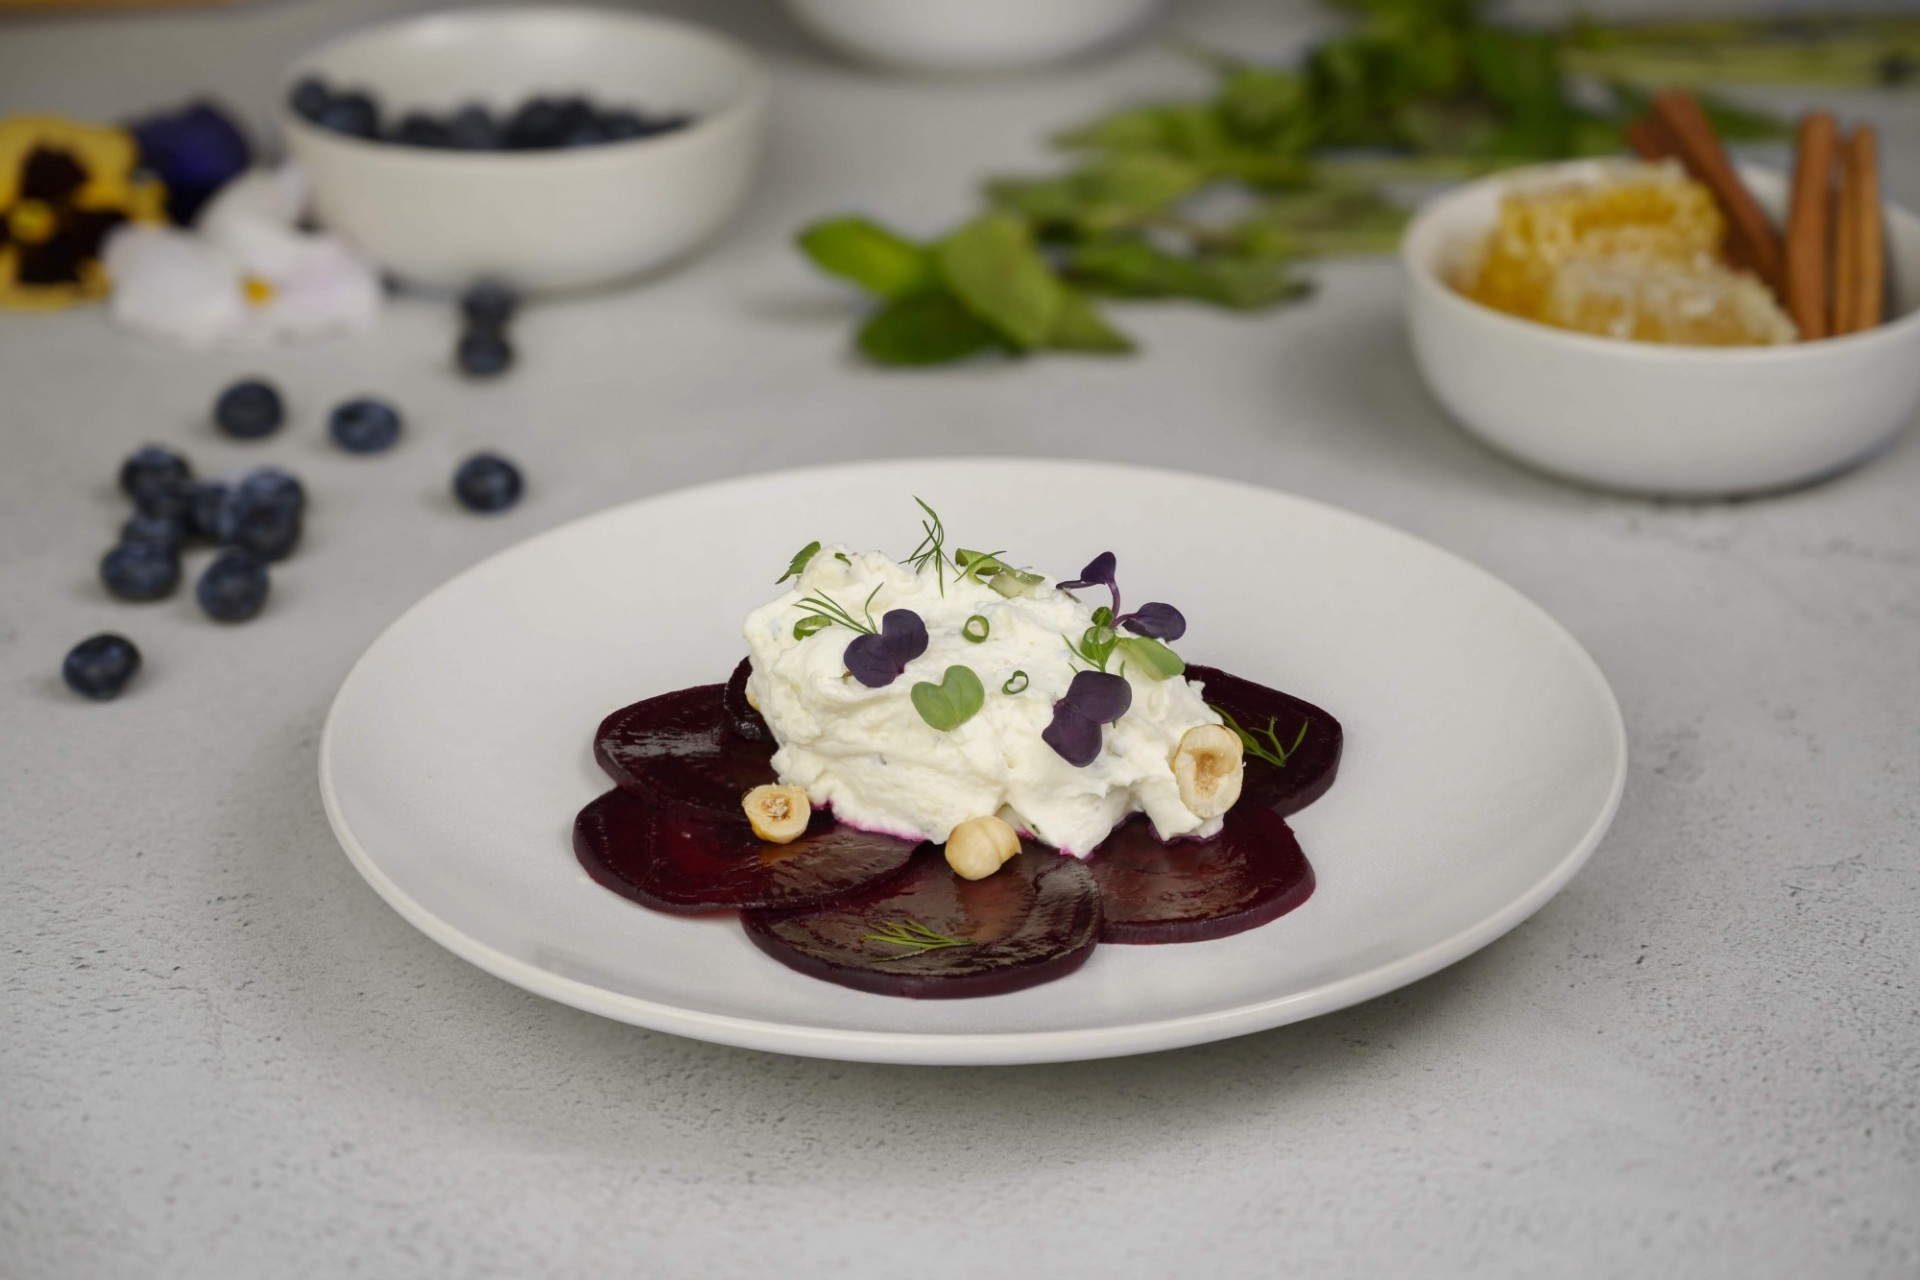 Roasted Beet Salad with whipped goat cheese and toasted hazelnuts